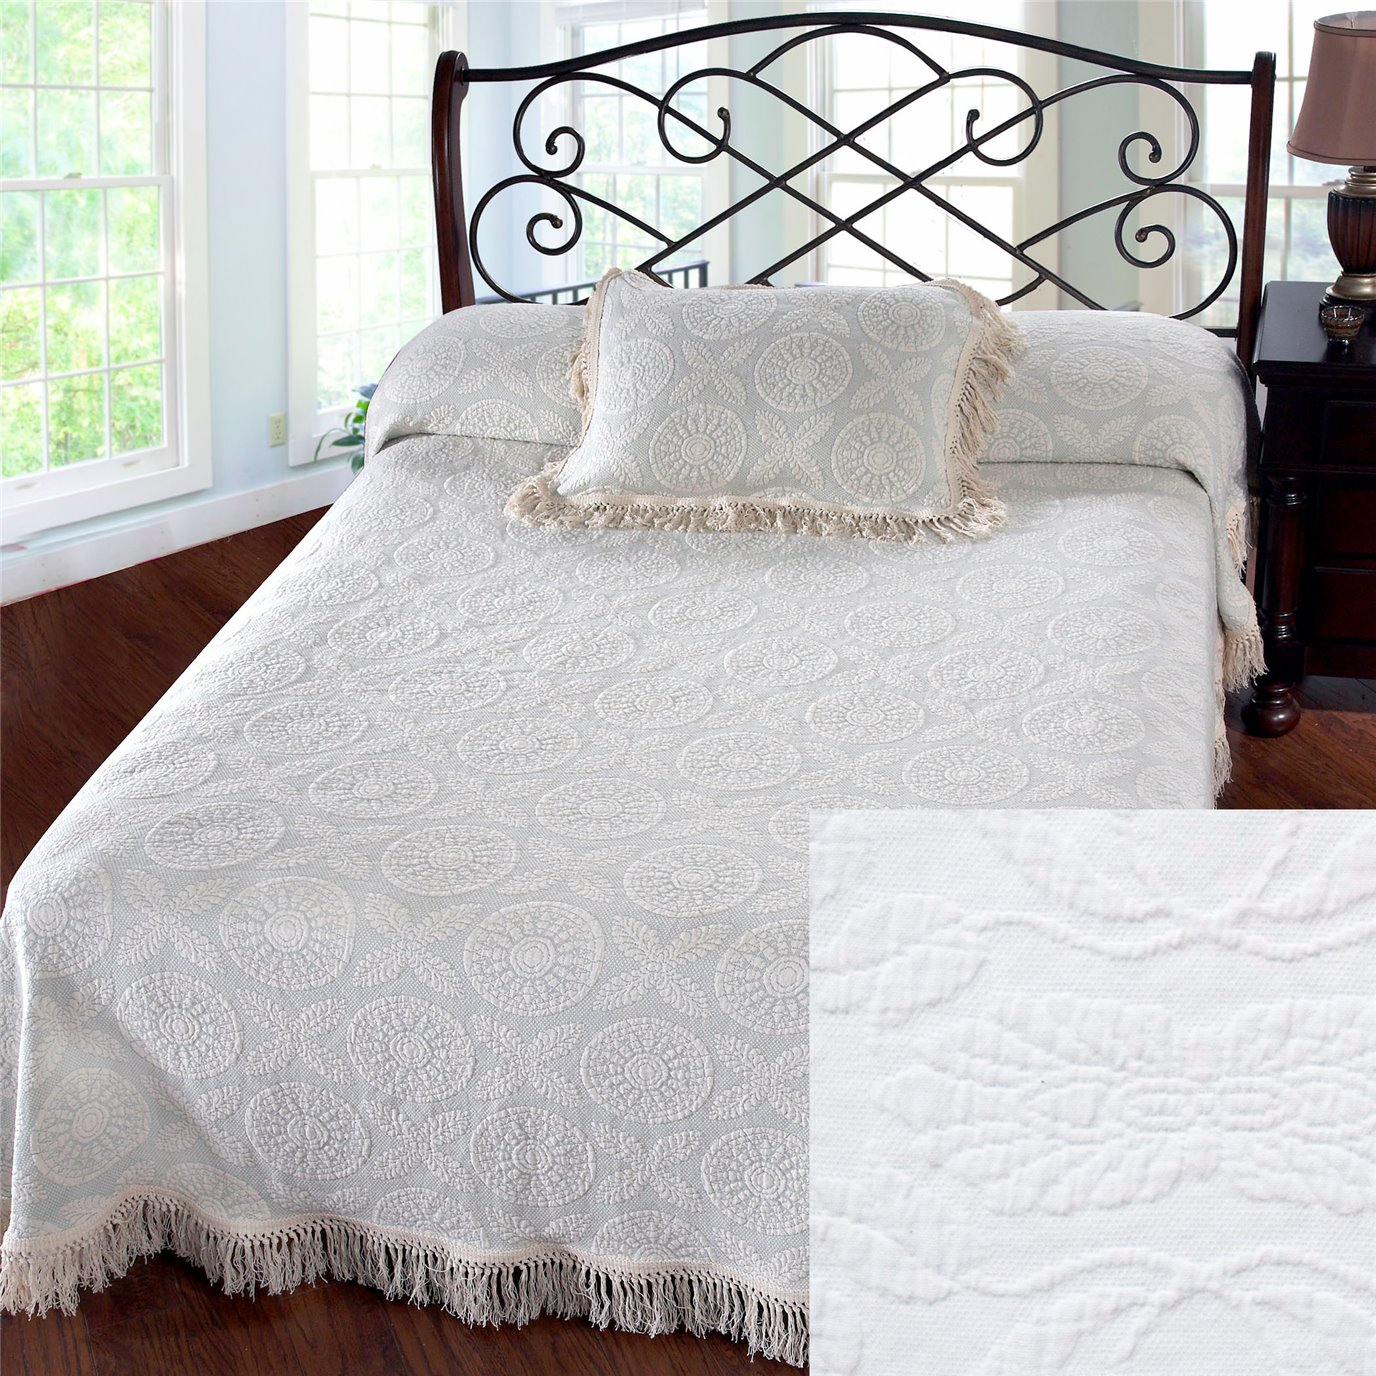 Heirloom King White Bedspread